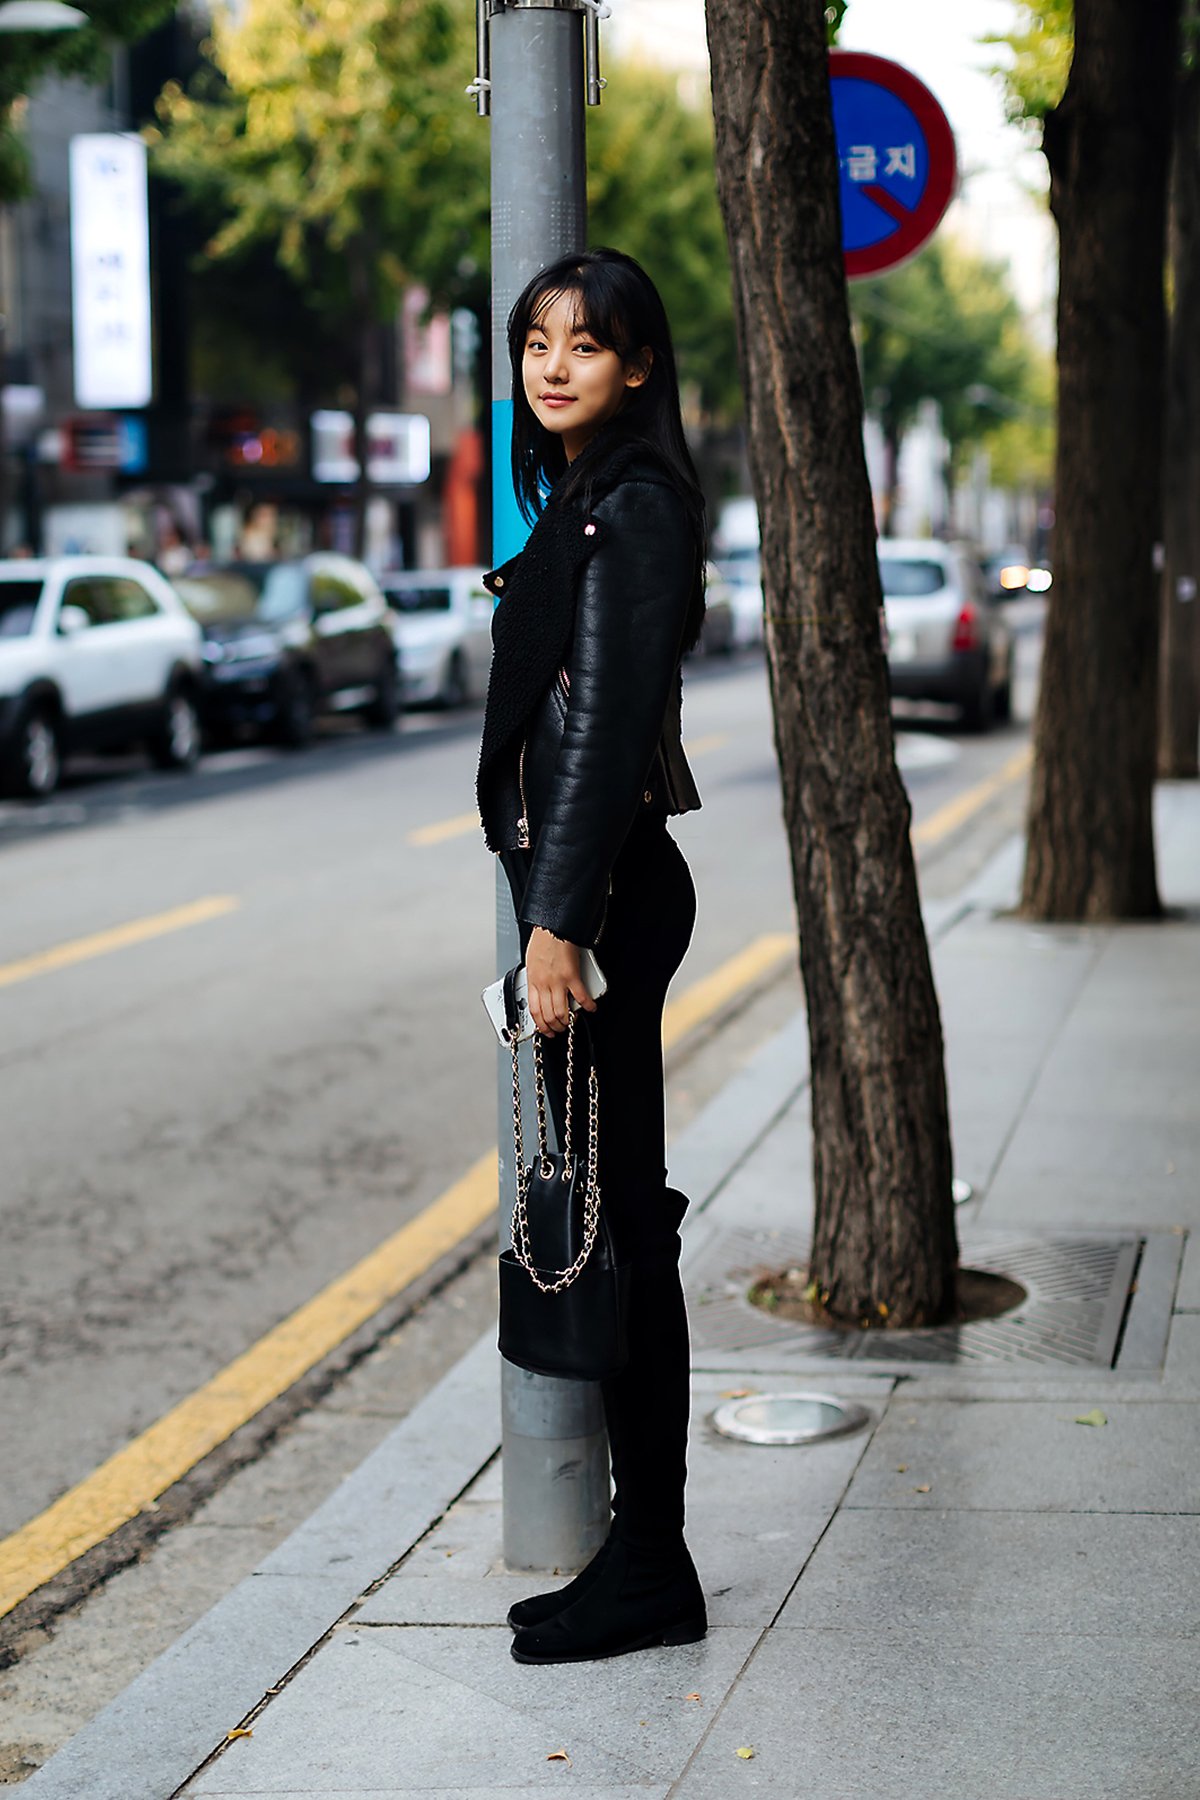 Women fall street style fourth week of october 2018 in seoul 11